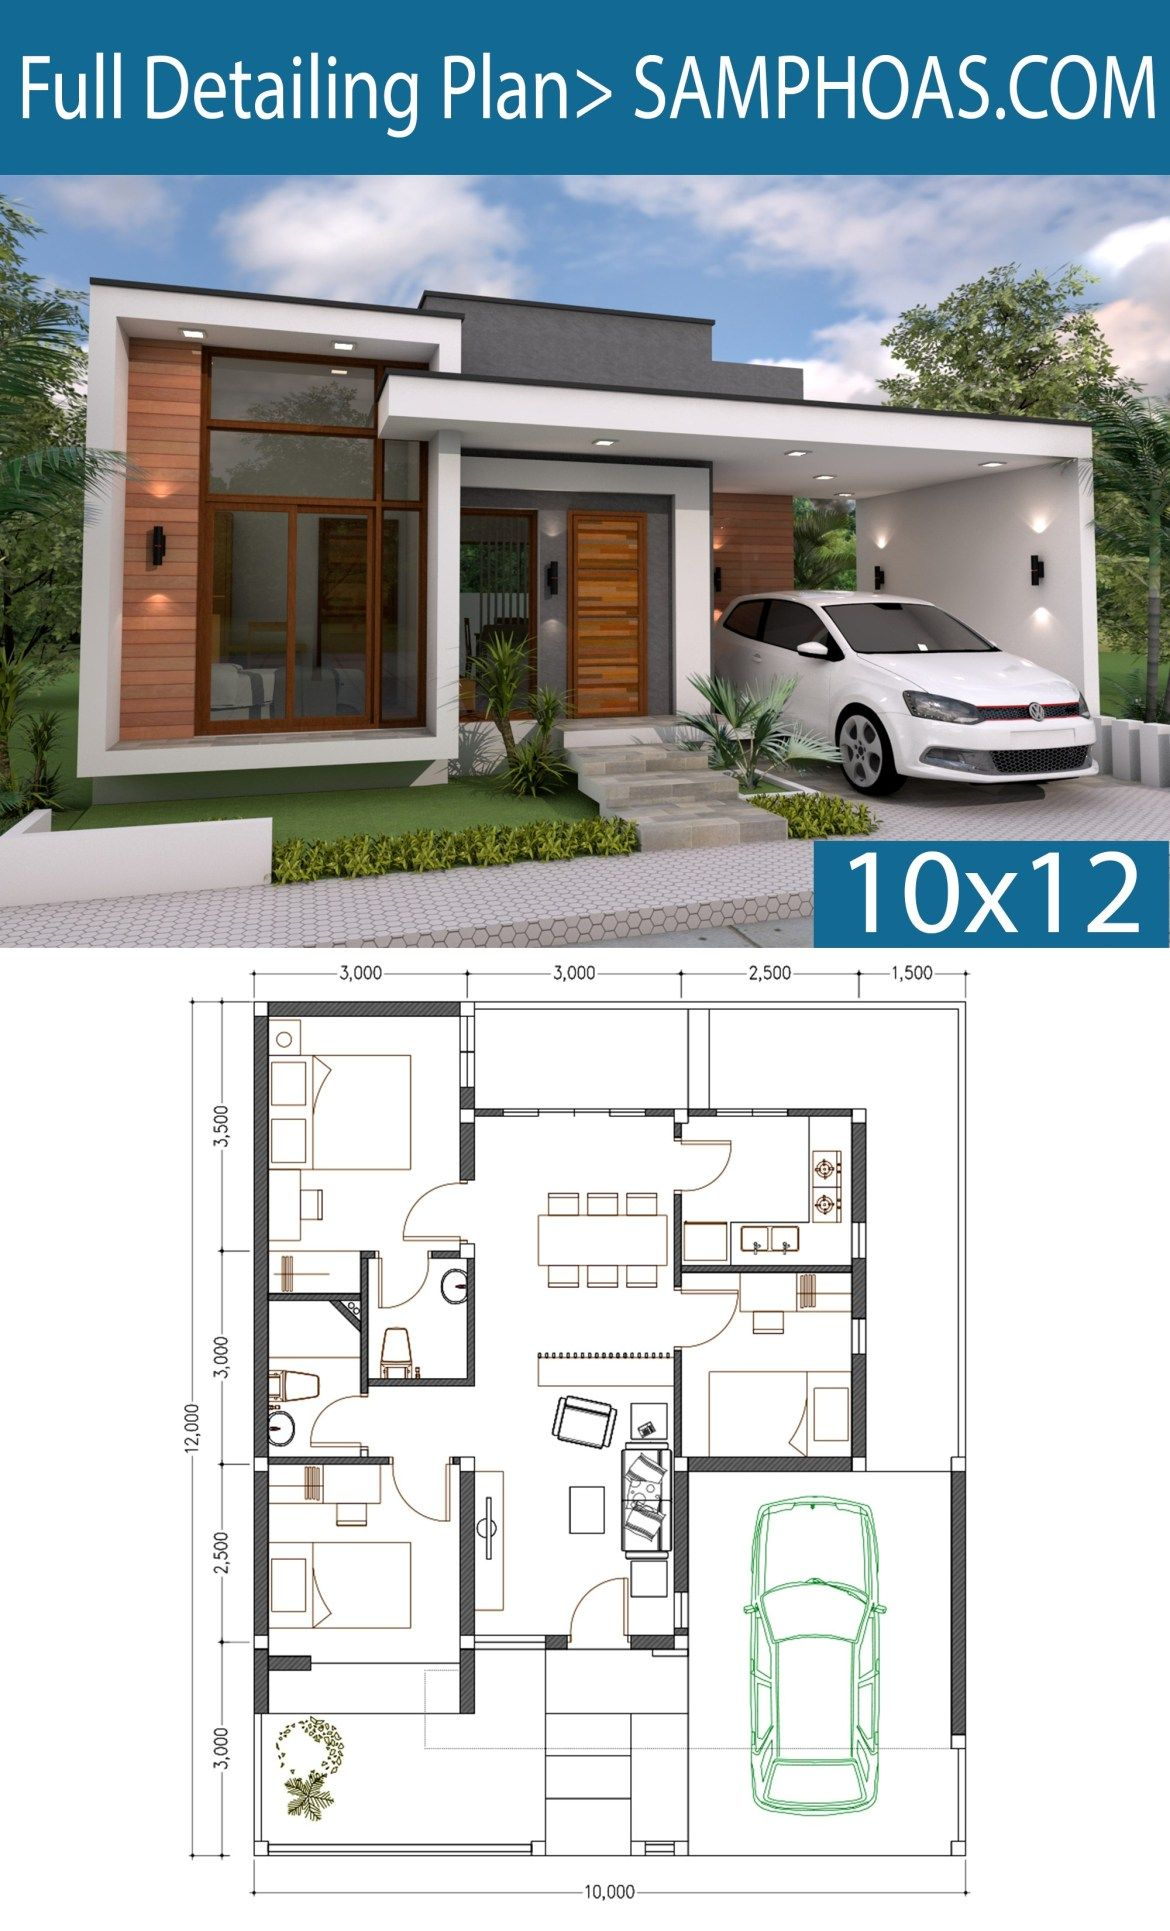 3 Bedrooms Home Design Plan 10x12m Samphoas Plansearch Bungalow House Plans Modern Style House Plans Modern Bungalow House